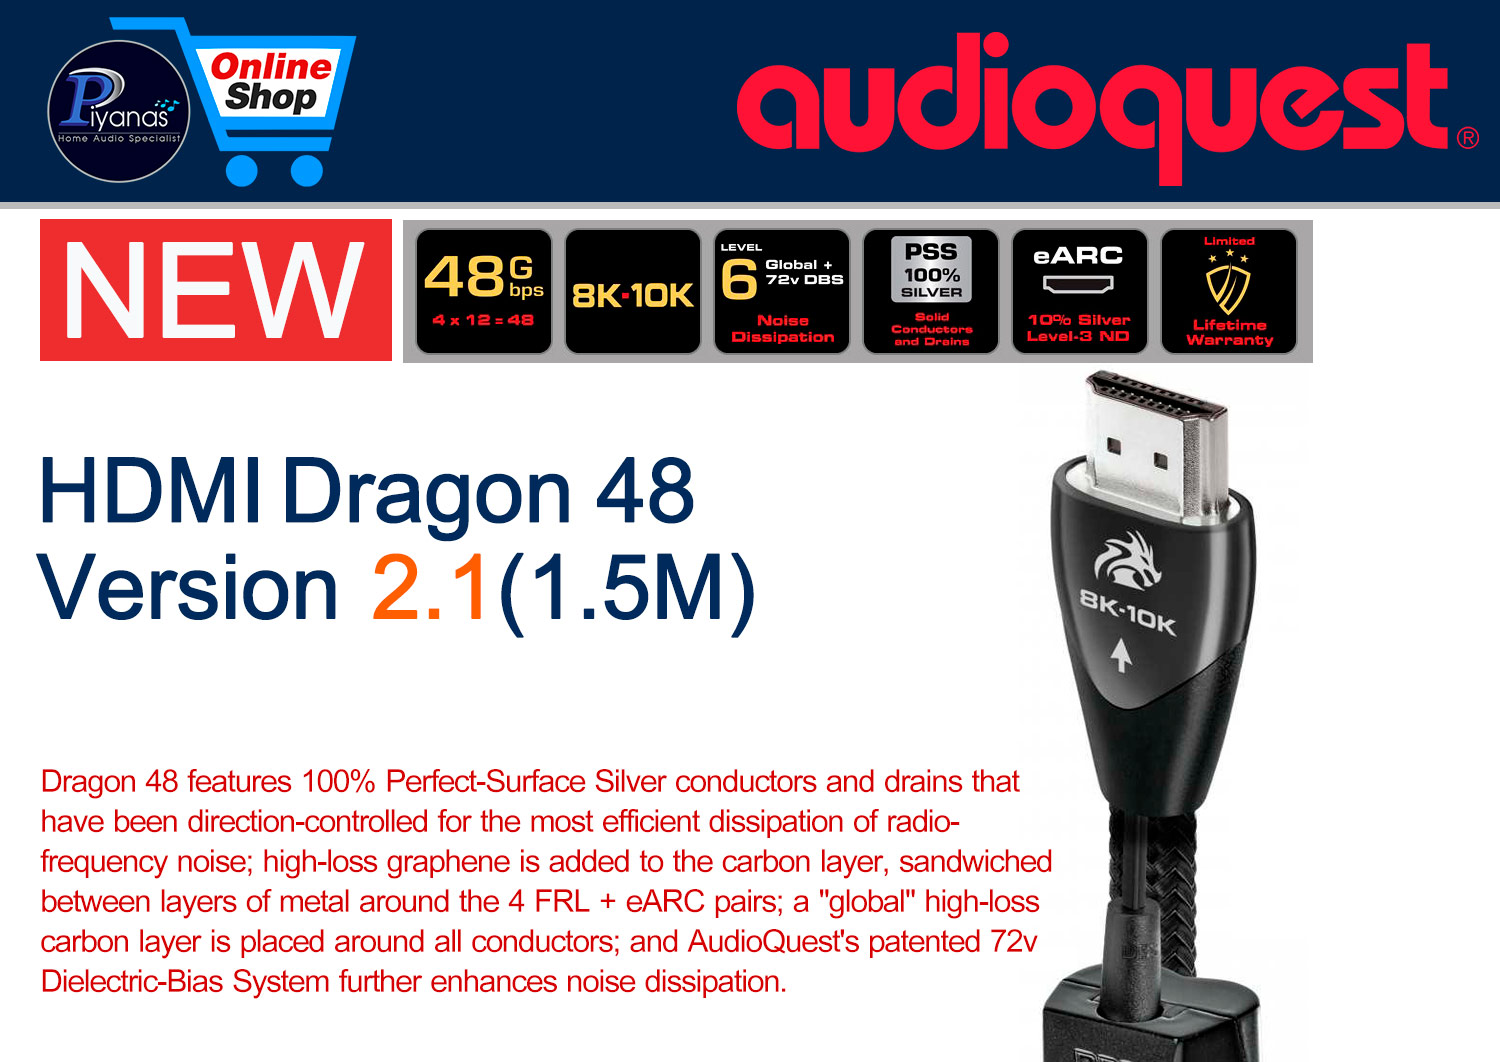 HDMI-Dragon 48 Version 2.1 (1.5M)